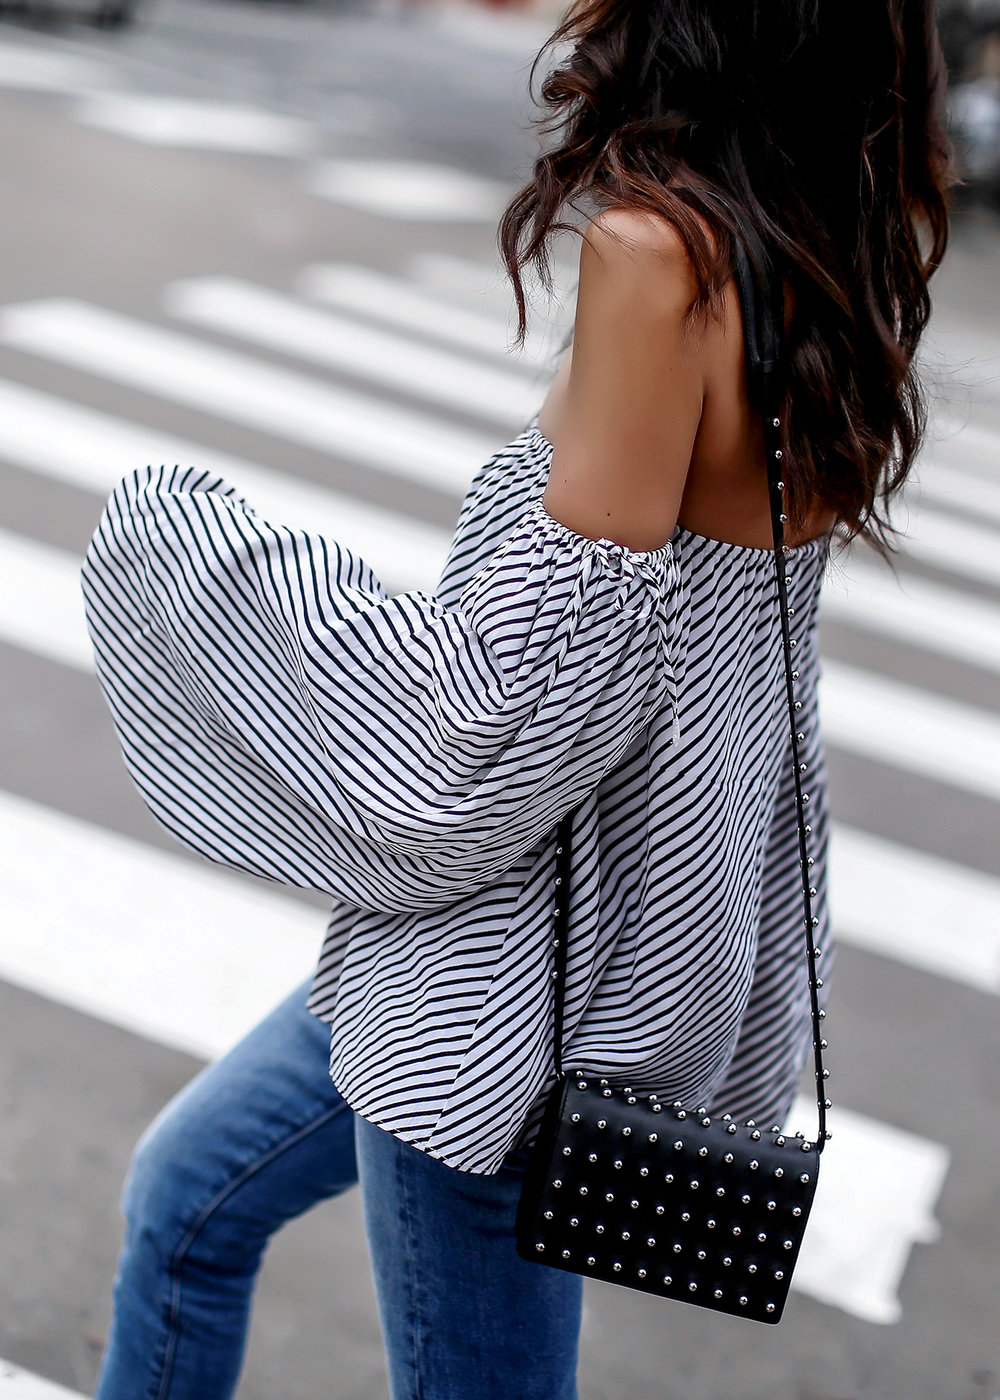 Flowy_Sleeves_Dallas_MLM_Striped_Off_The_Shoulder_Top_Alexander_Wang_Studded_Bag.jpg